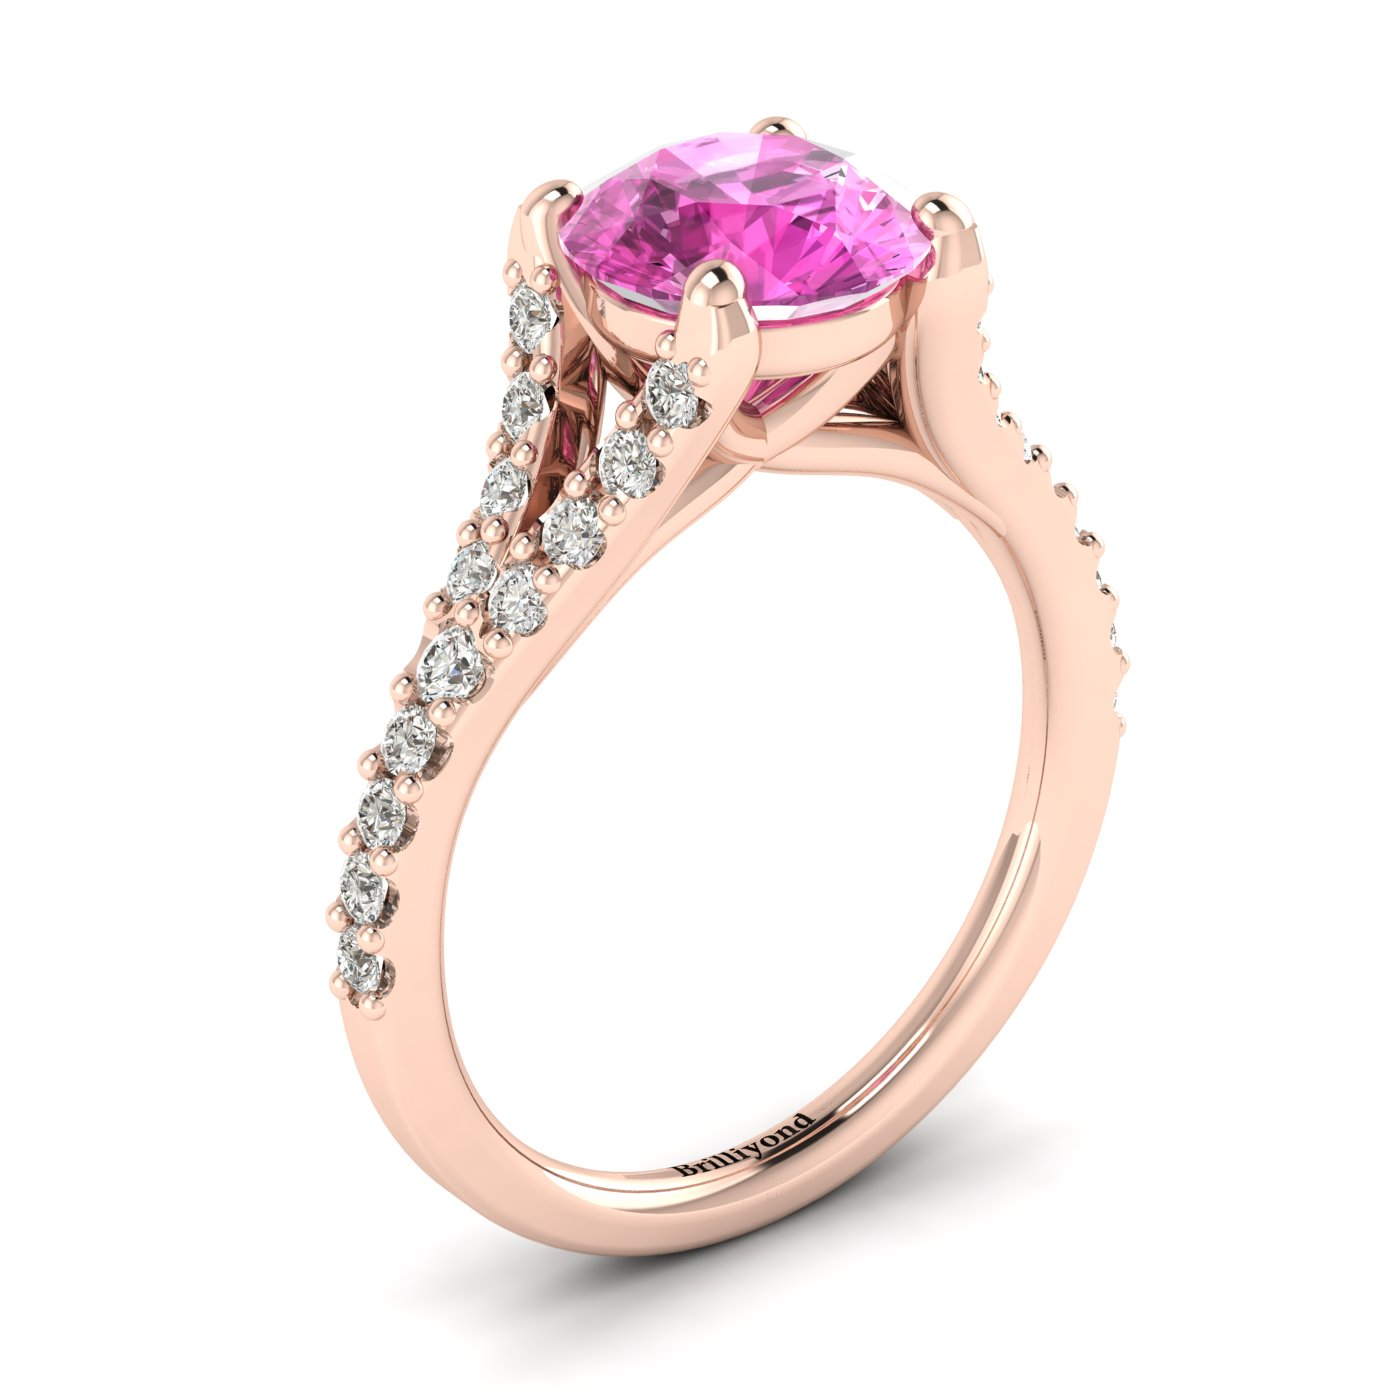 Magnificent rose gold engagement ring with natural pink Ceylon sapphire centre stone.